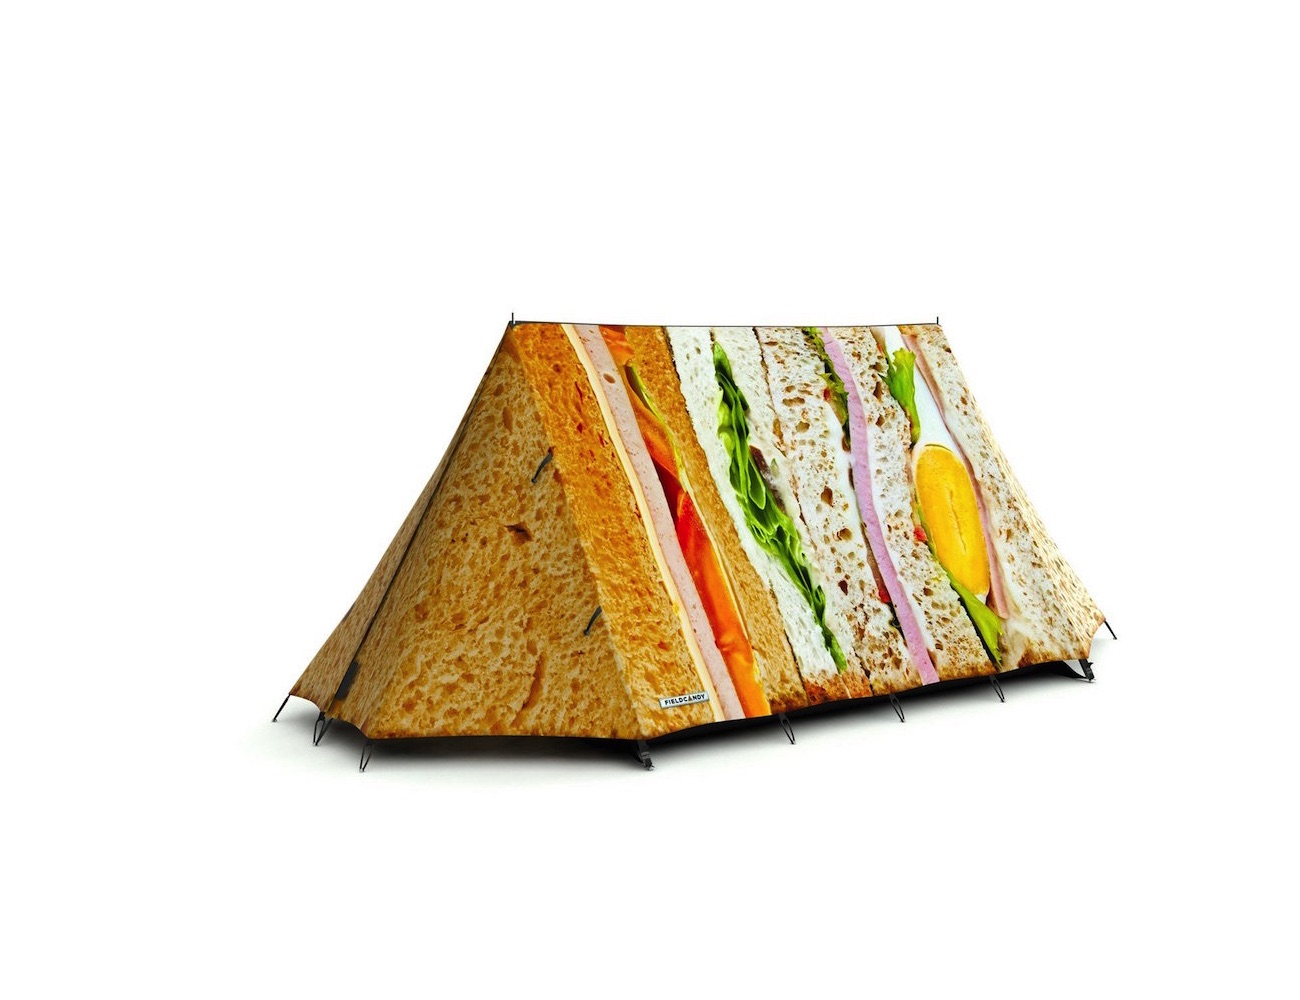 Perfect Picnic Tent by Fieldcandy